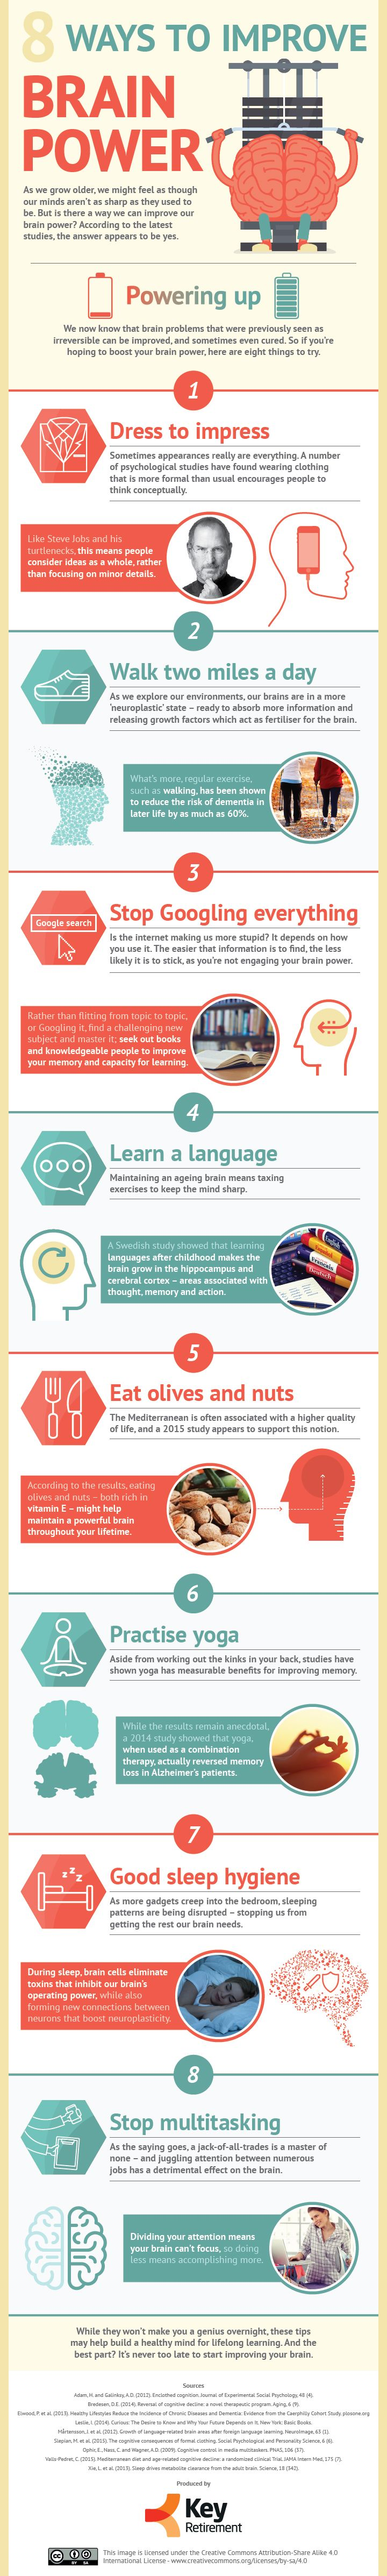 8 Ways To Improve Brain Power - Infographic